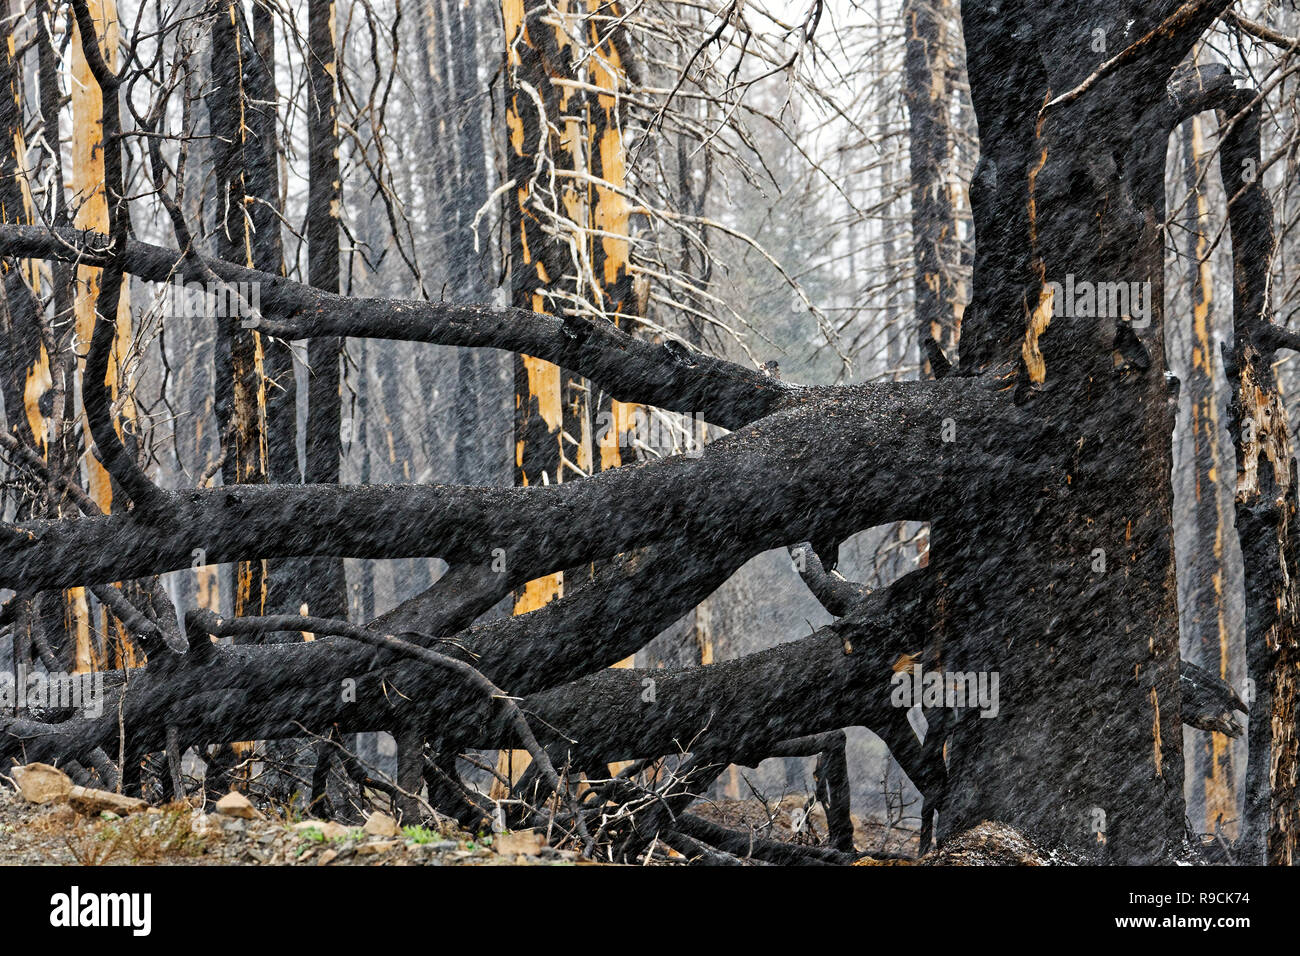 42,895.03613 close up black remains of conifer pine trees forest fire, standing dead blackened by massive hot searing forest fire, Oregon USA - Stock Image